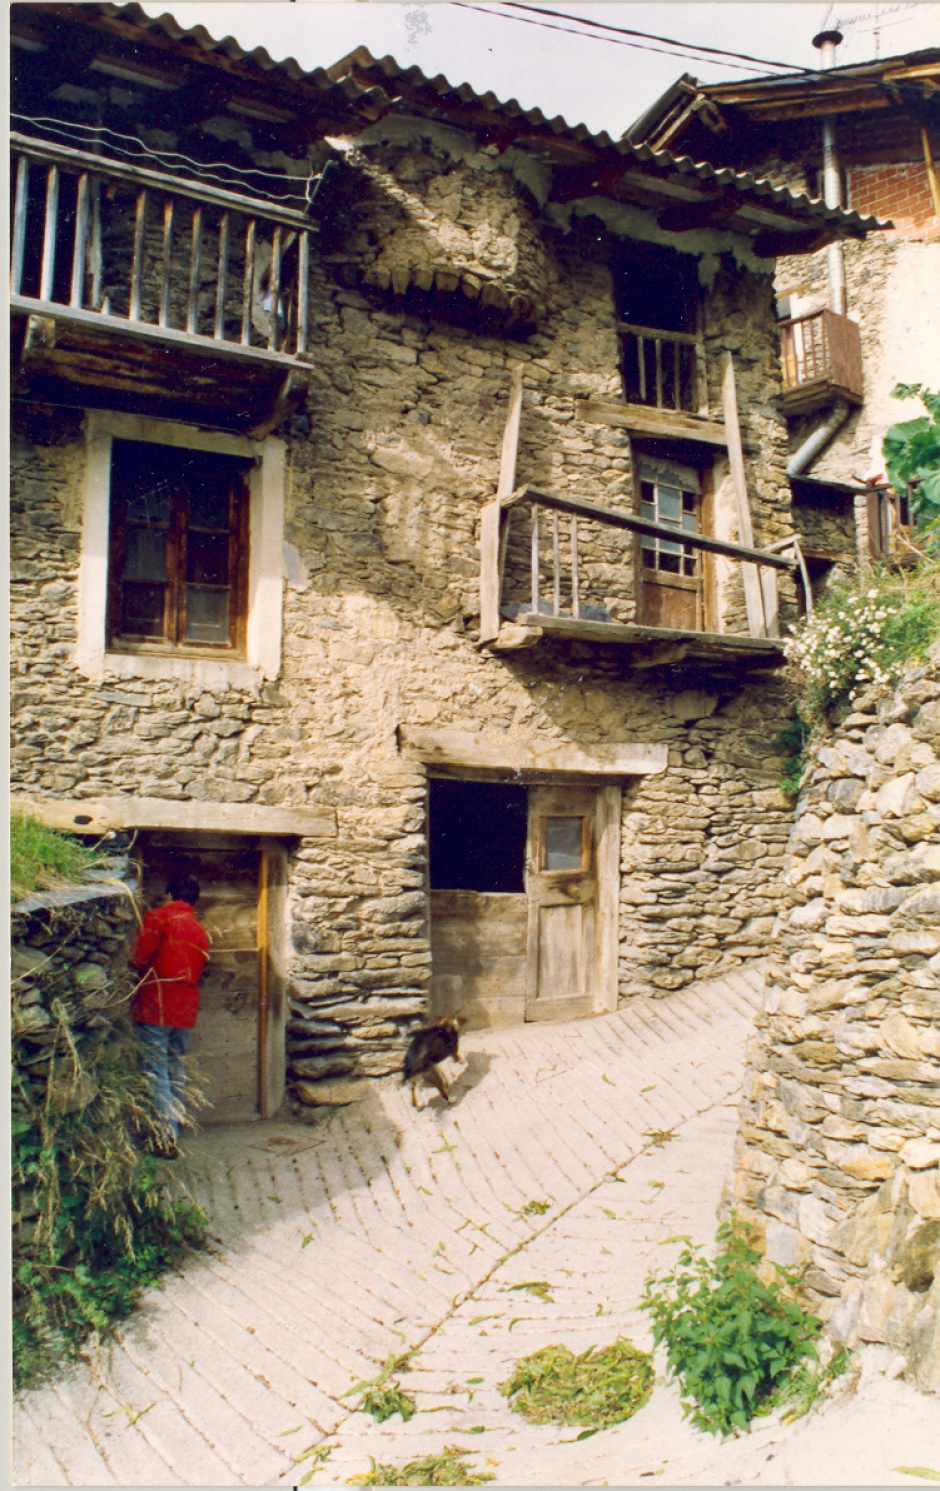 Renovation of Single Family Home in Asnurri, Architecture (Principality of Andorra)